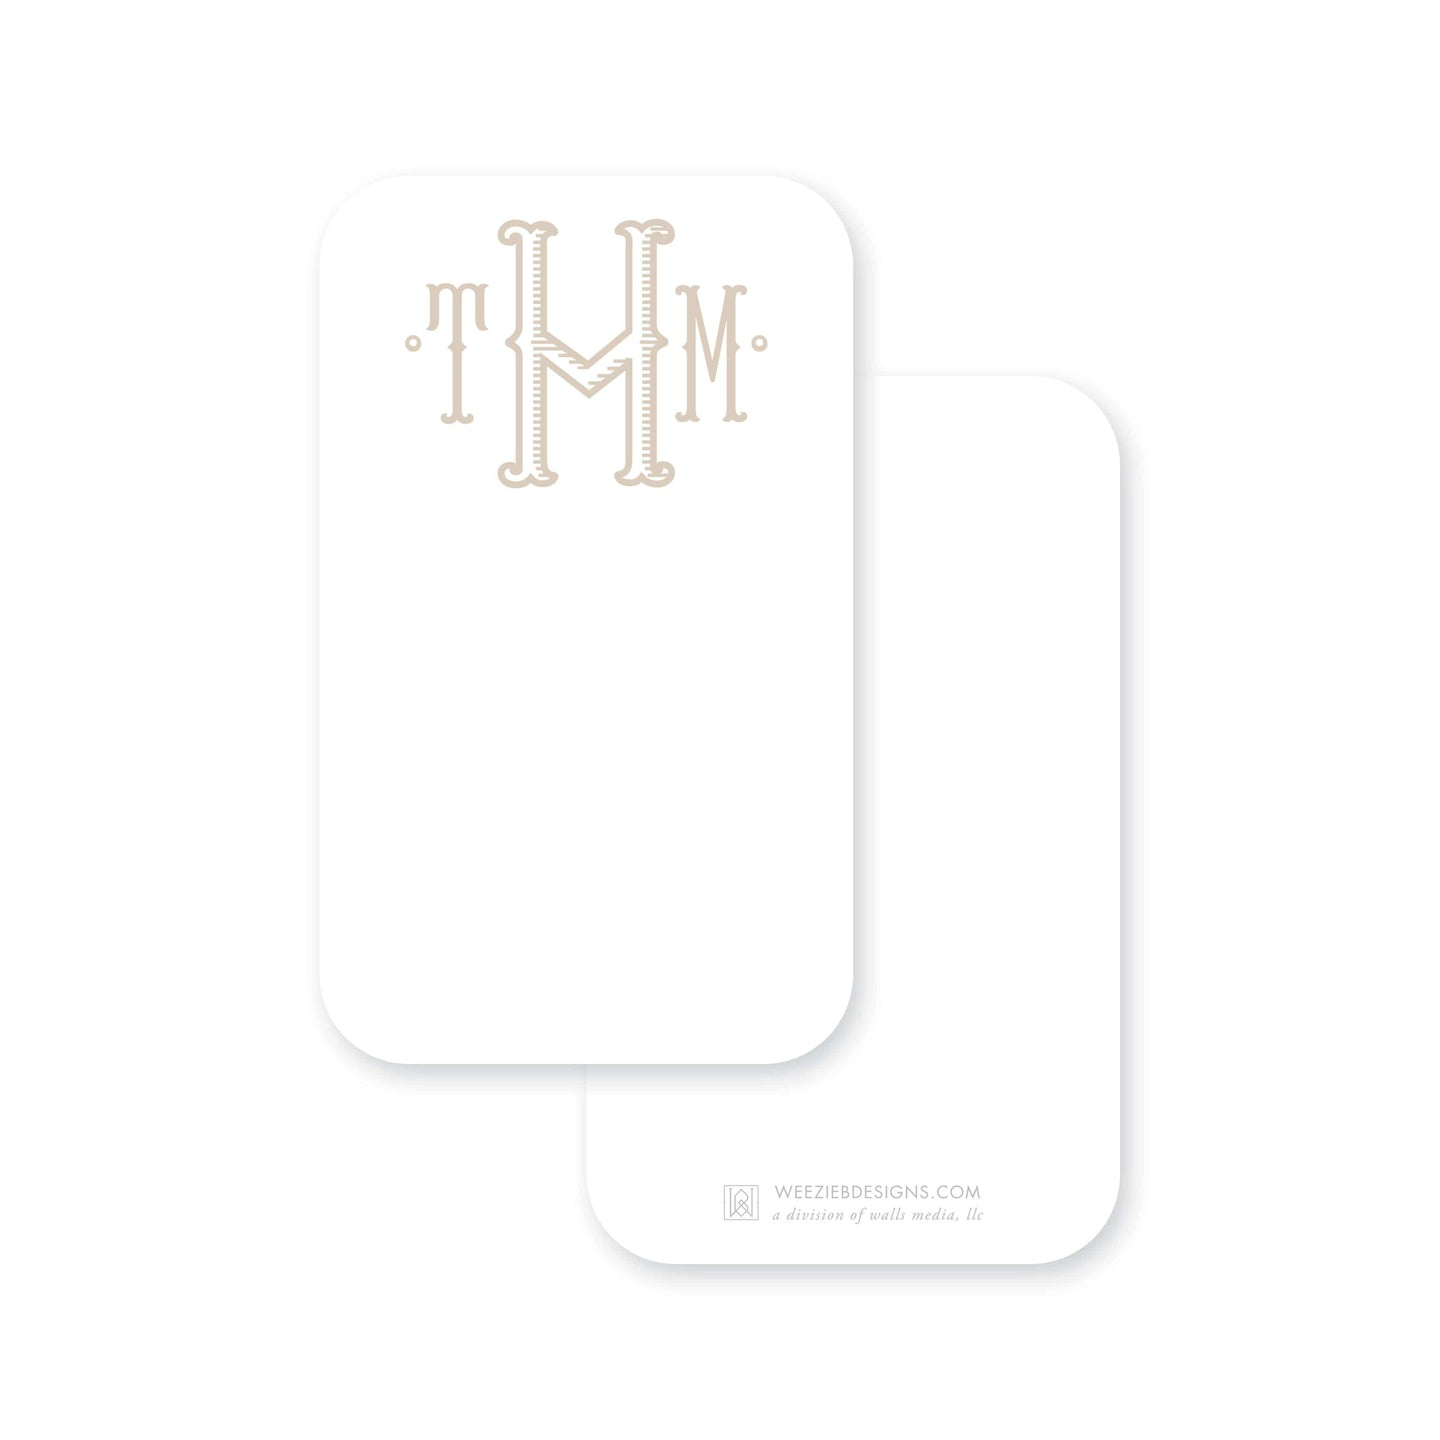 Weezie B. Designs | Fishtail Center Stripes Pocket Note Cards